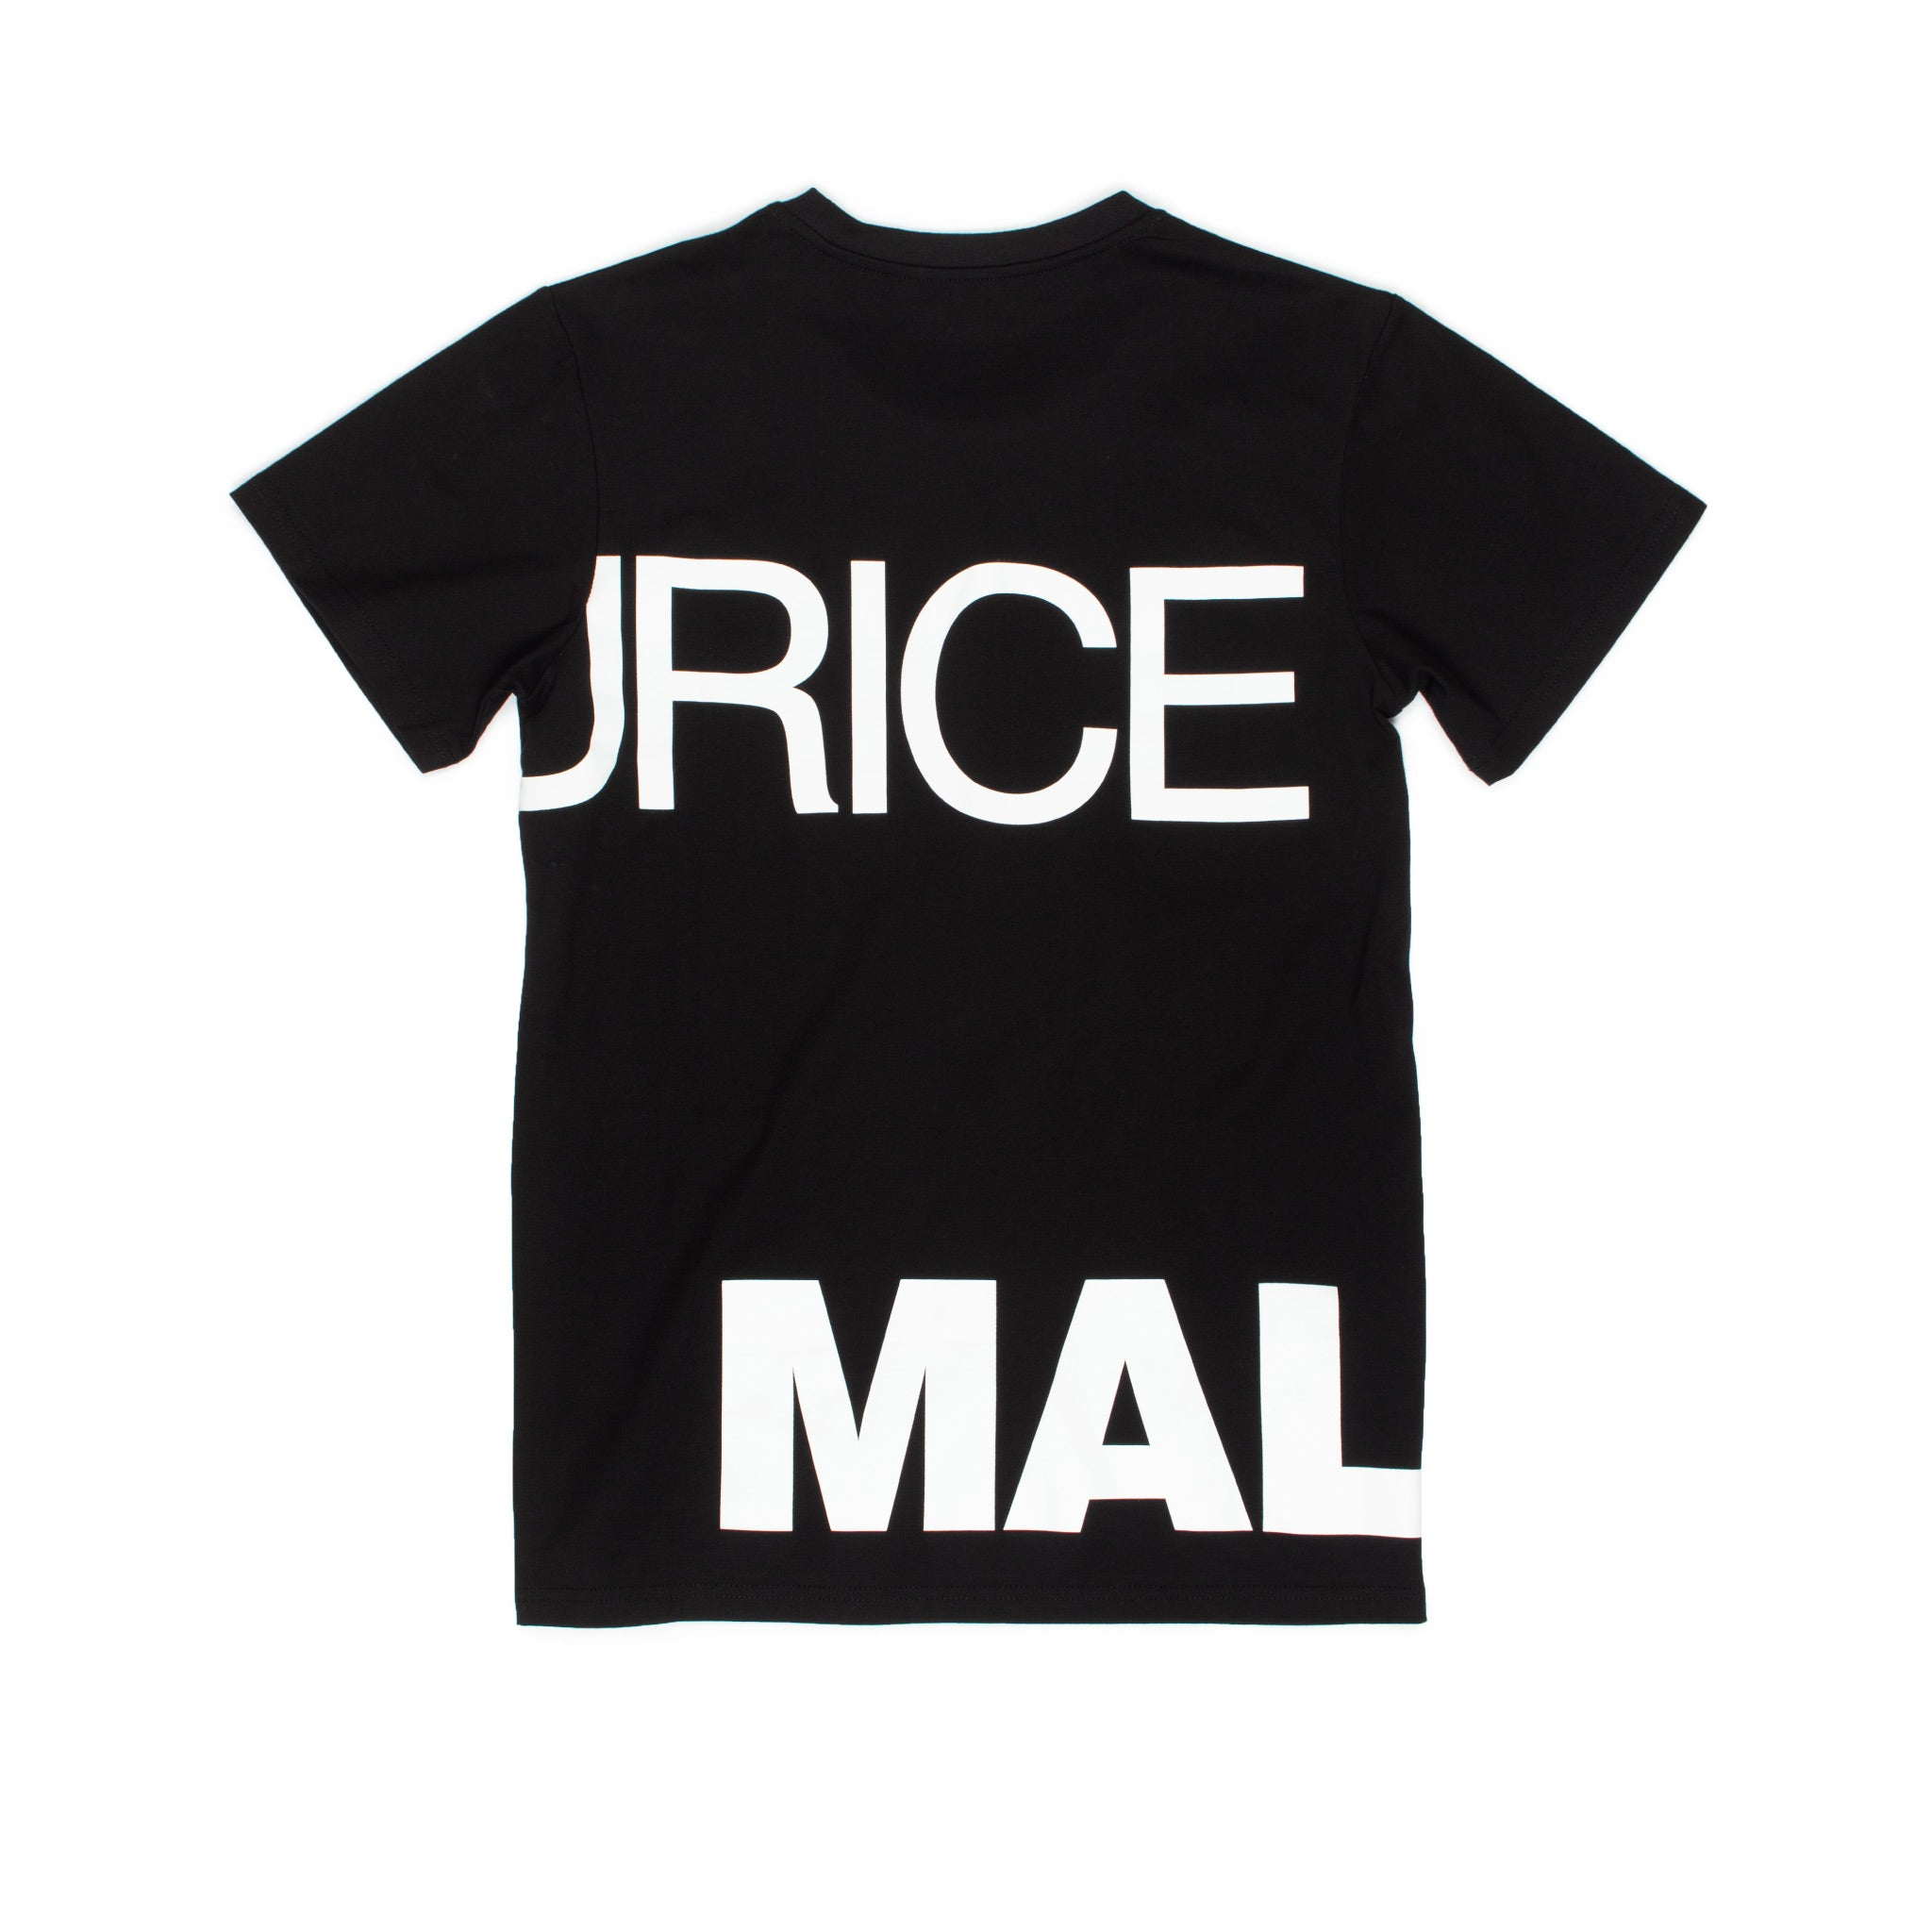 Rear view of black t-shirt with Maurice Malone logo